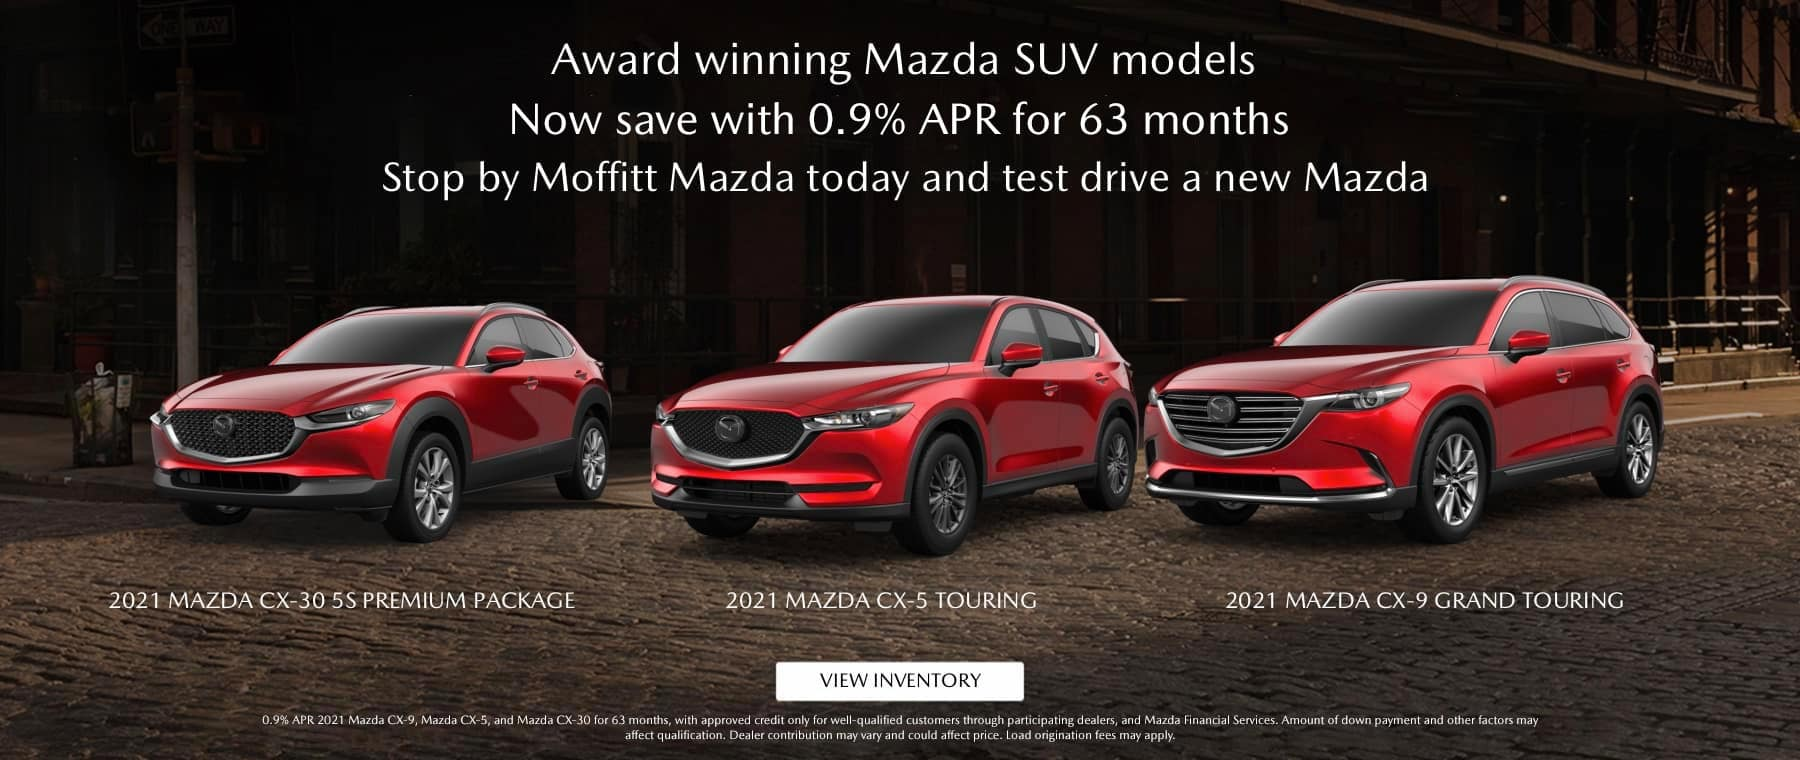 Award Winning Mazda SUV Models - Now save 0.9% for 63 months. Stop by Moffitt Mazda today and test drive a new Mazda